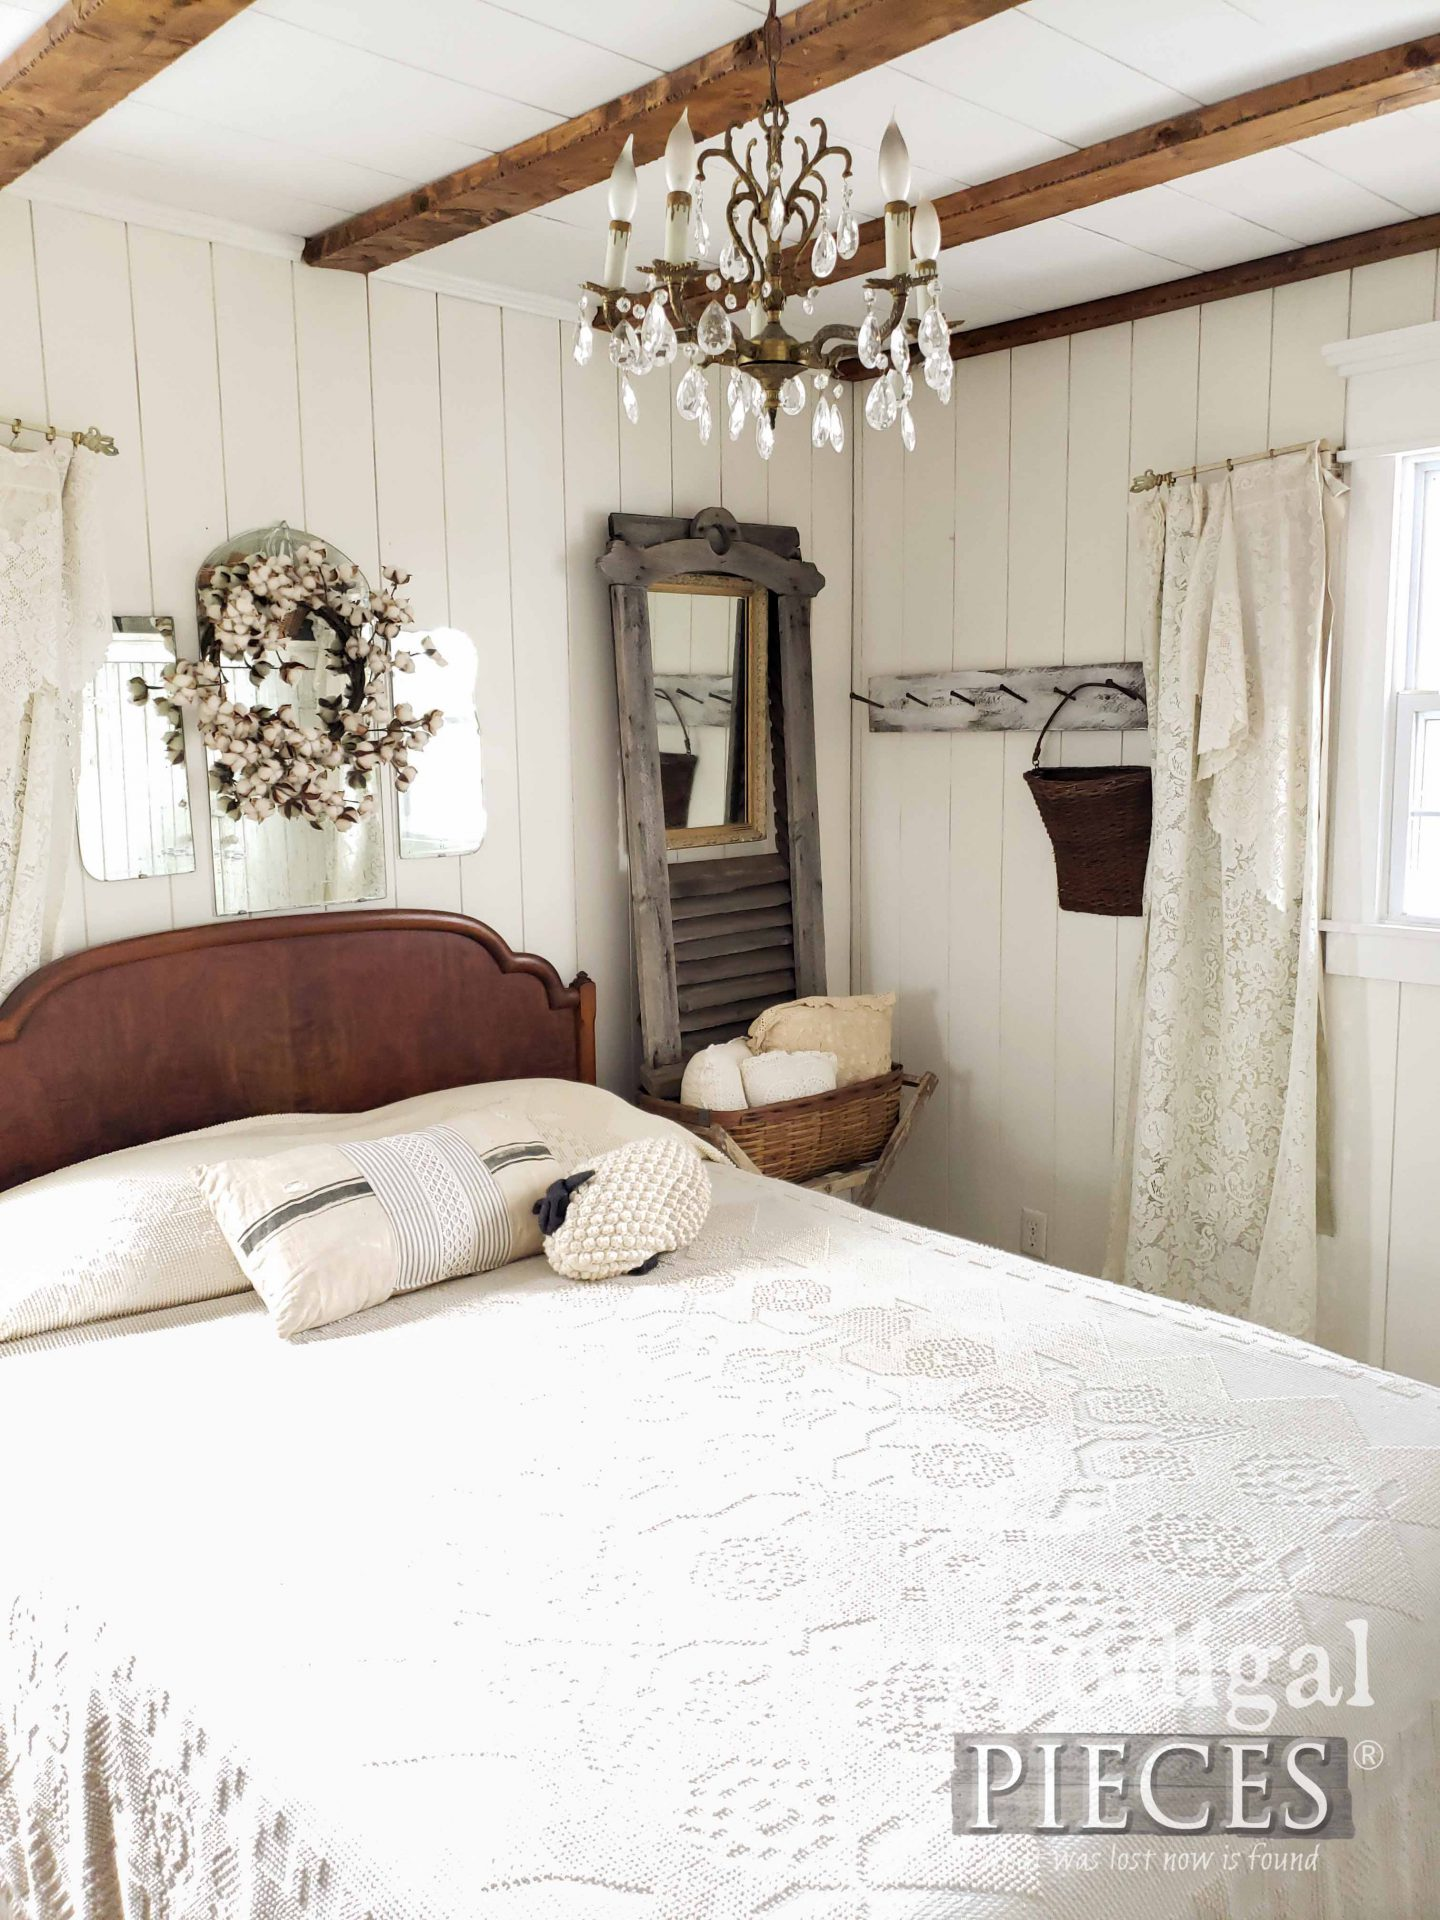 Larissa of Prodigal Pieces Farmhouse Bedroom with Architectural Salvage Decor | prodigalpieces.com #prodigalpieces #bedroom #farmhouse #home #homedecor